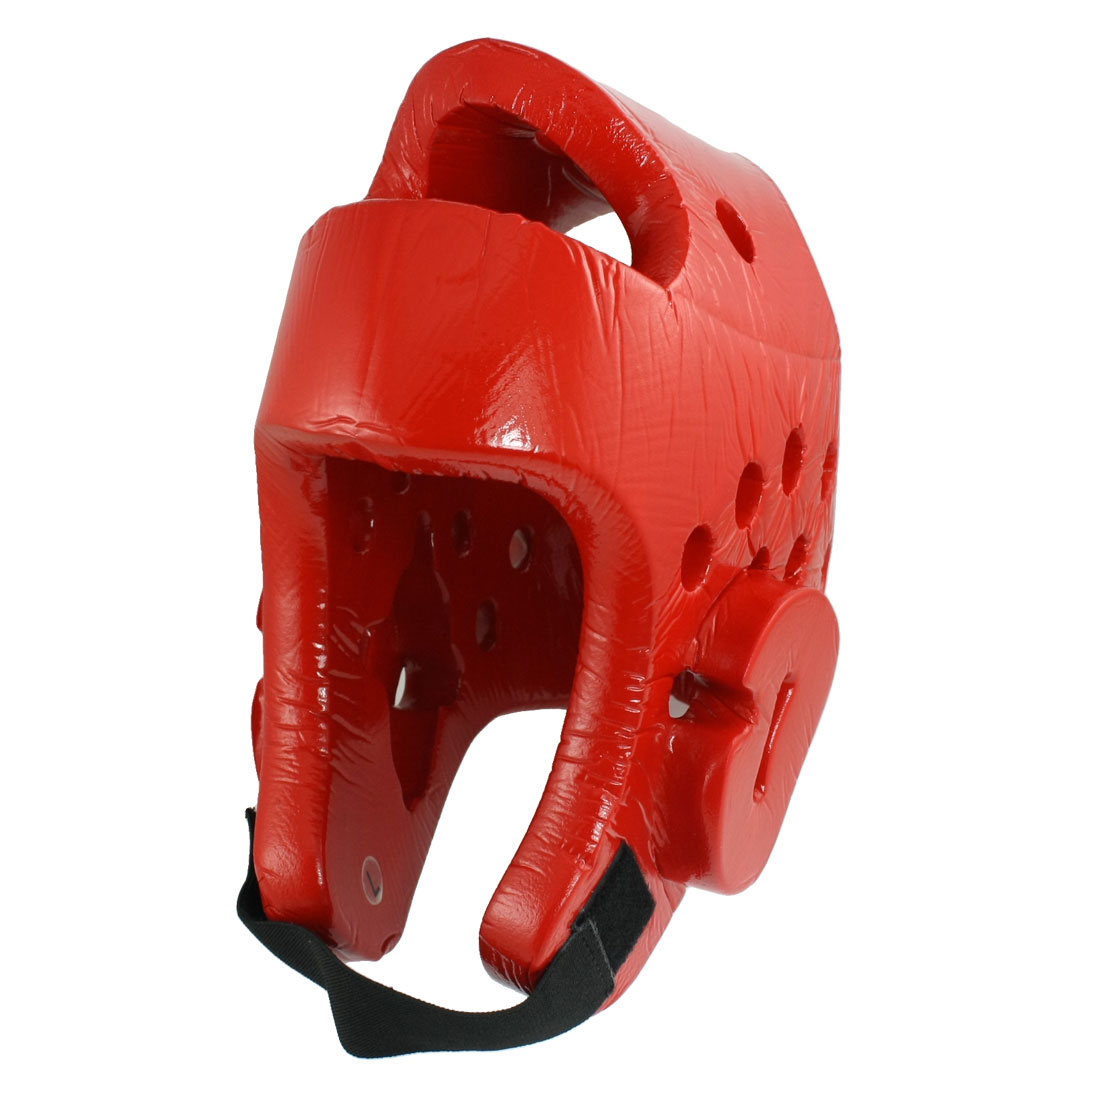 Lady Man Kickboxing Taekwondo Helmet Head Guard Protector Red